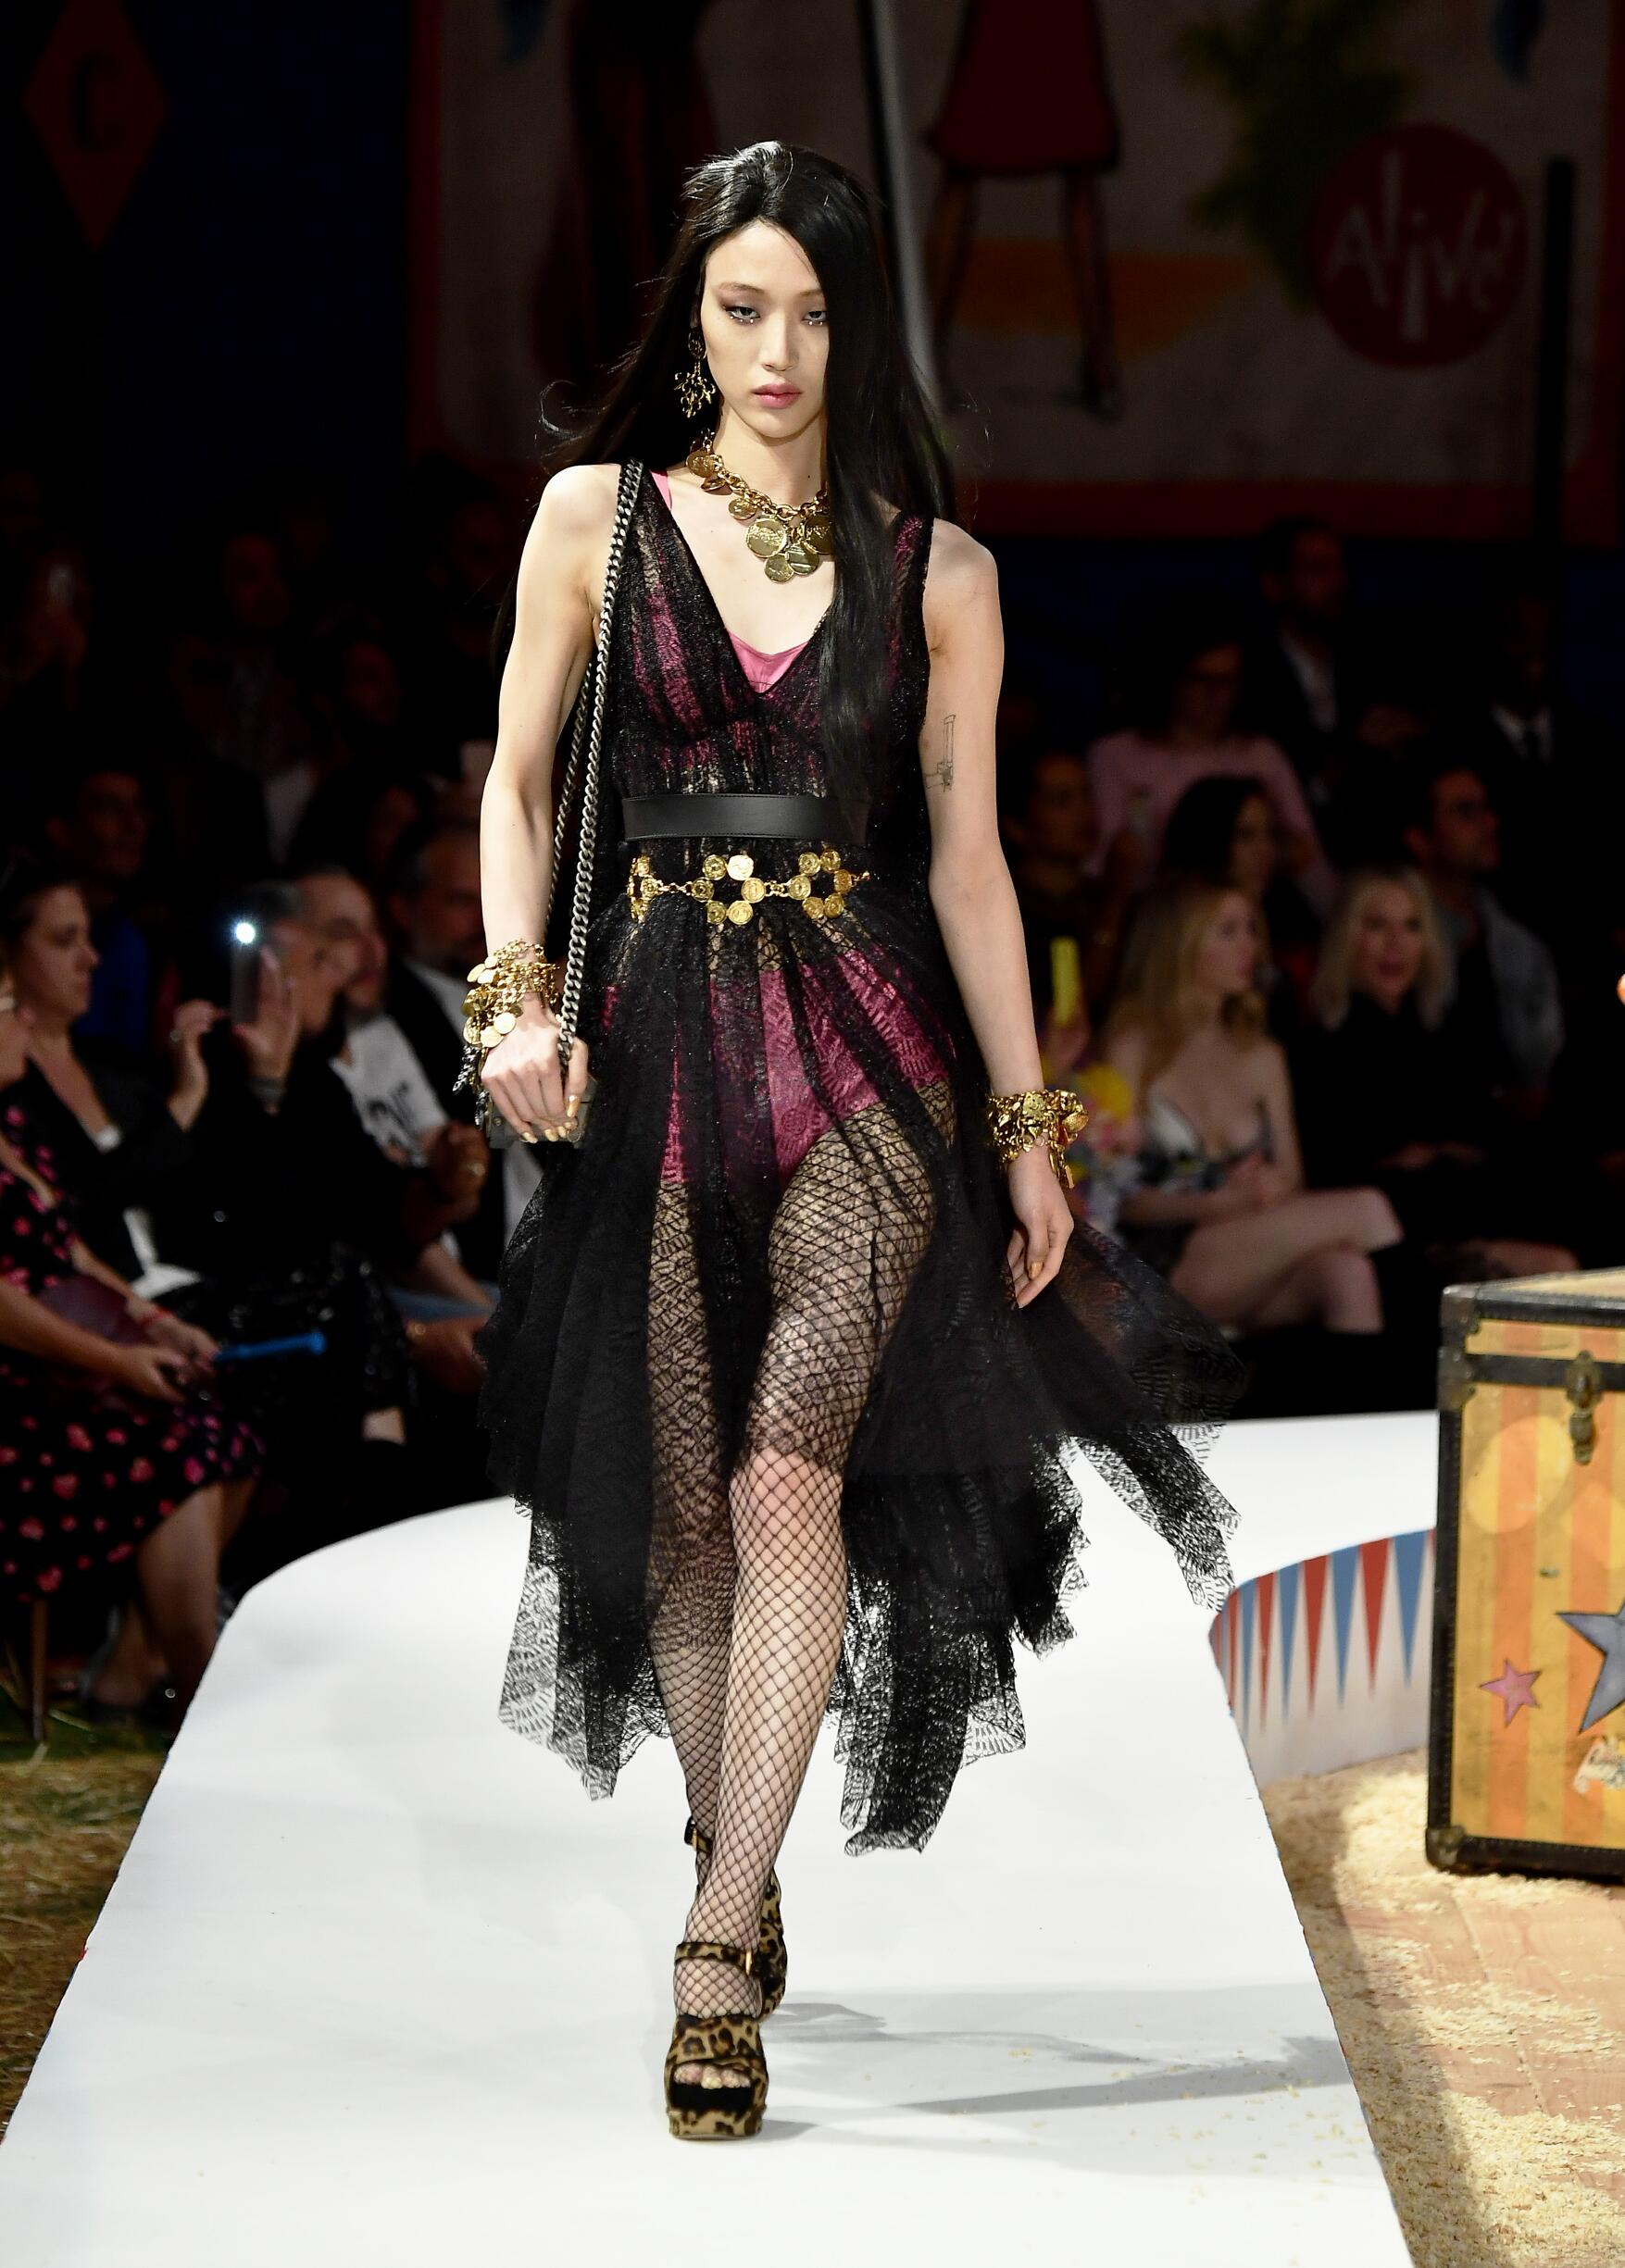 Moschino Spring Summer 2019 Menswear and Women's Resort Collection Look 57 Los Angeles